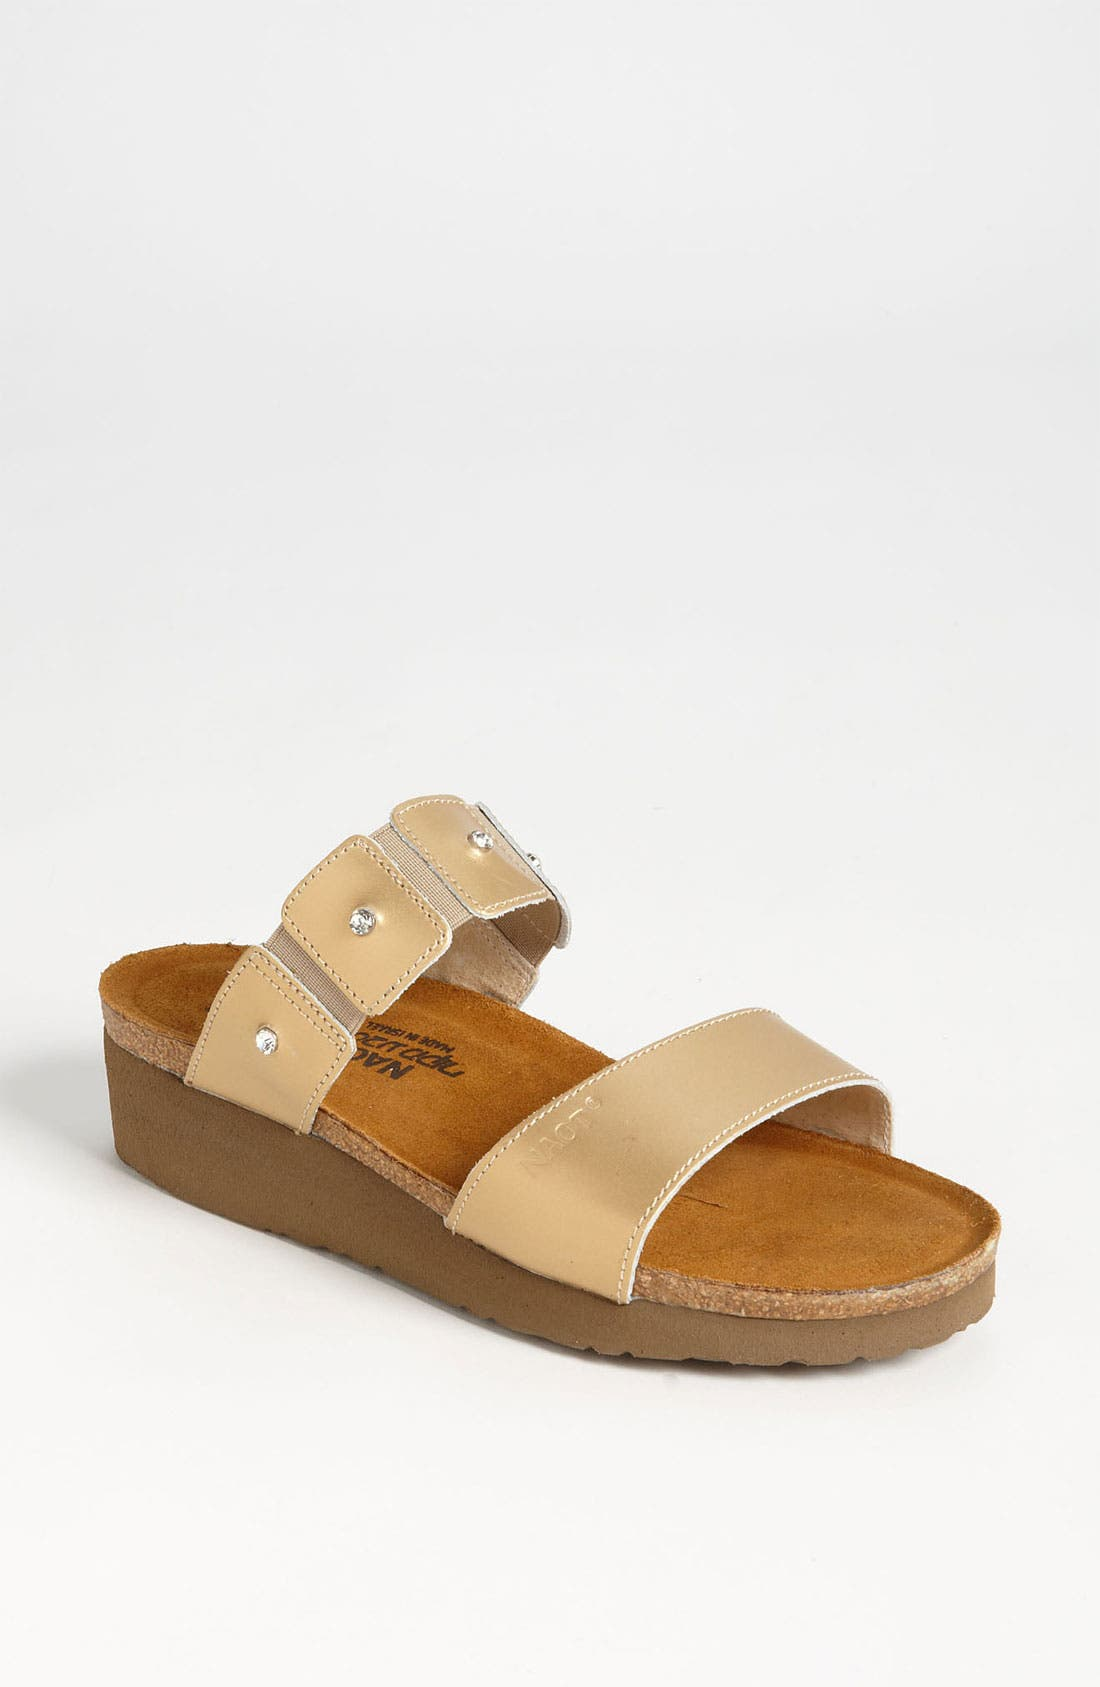 Alternate Image 1 Selected - Naot 'Ashley' Sandal